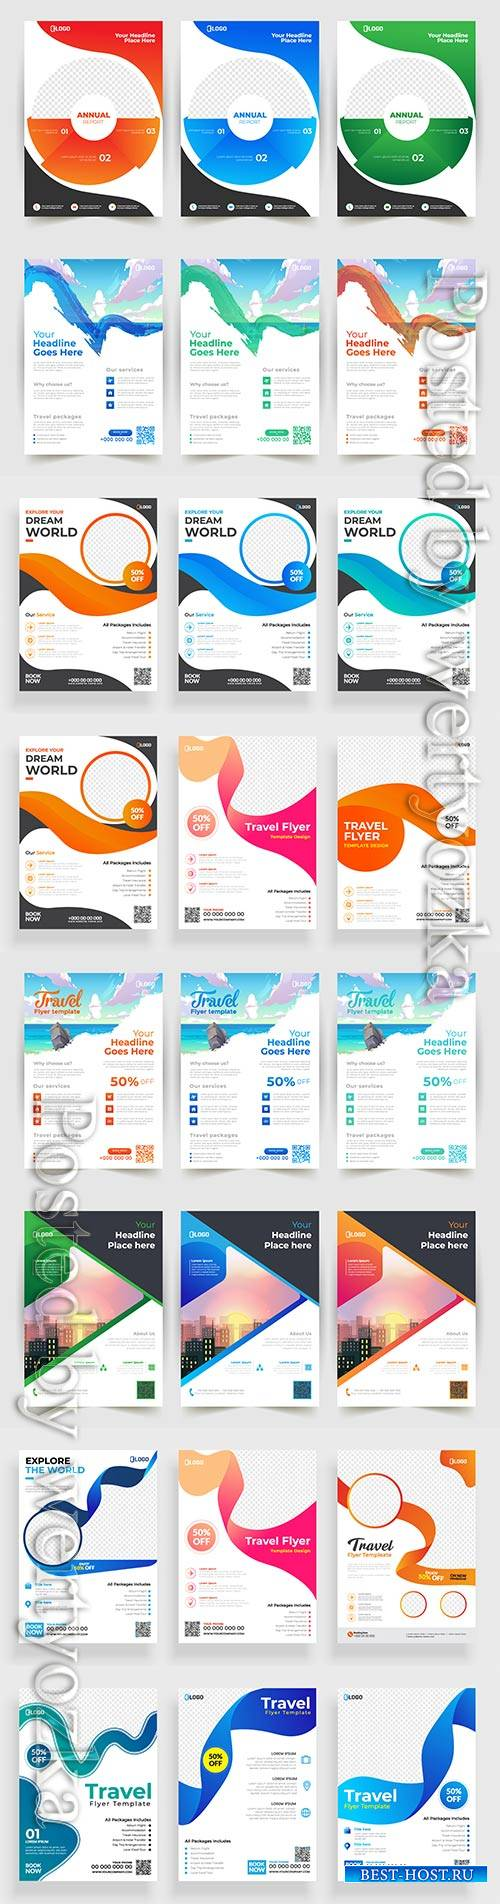 Business flyer template design, brochure vector illustration # 6